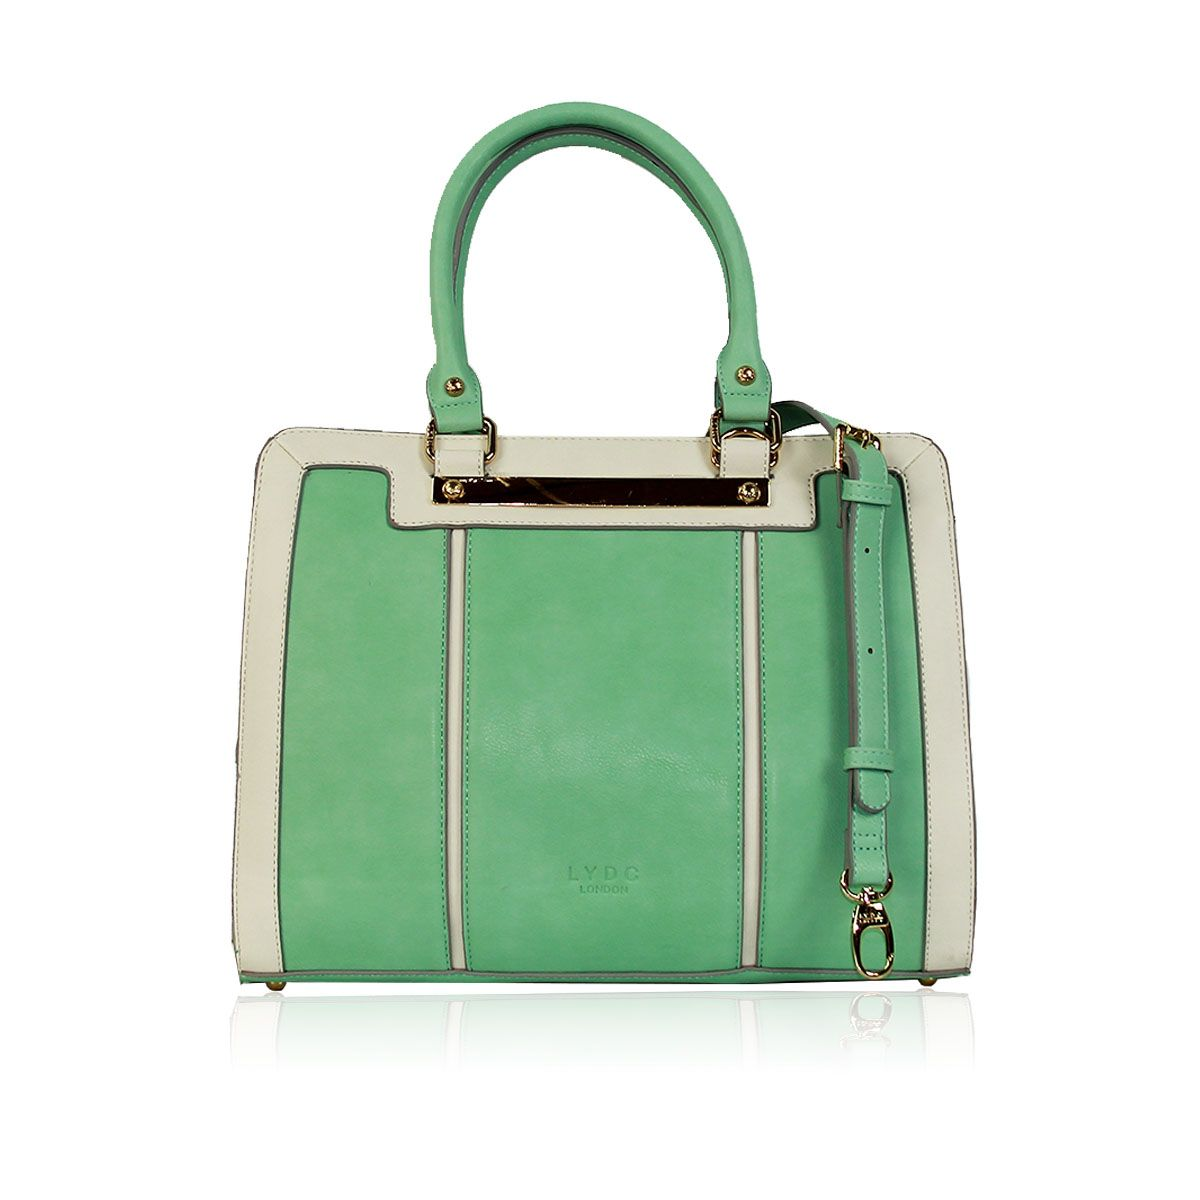 c5860aa2c379 The Marshaw Tote Bag by LYDC in Mint and Cream